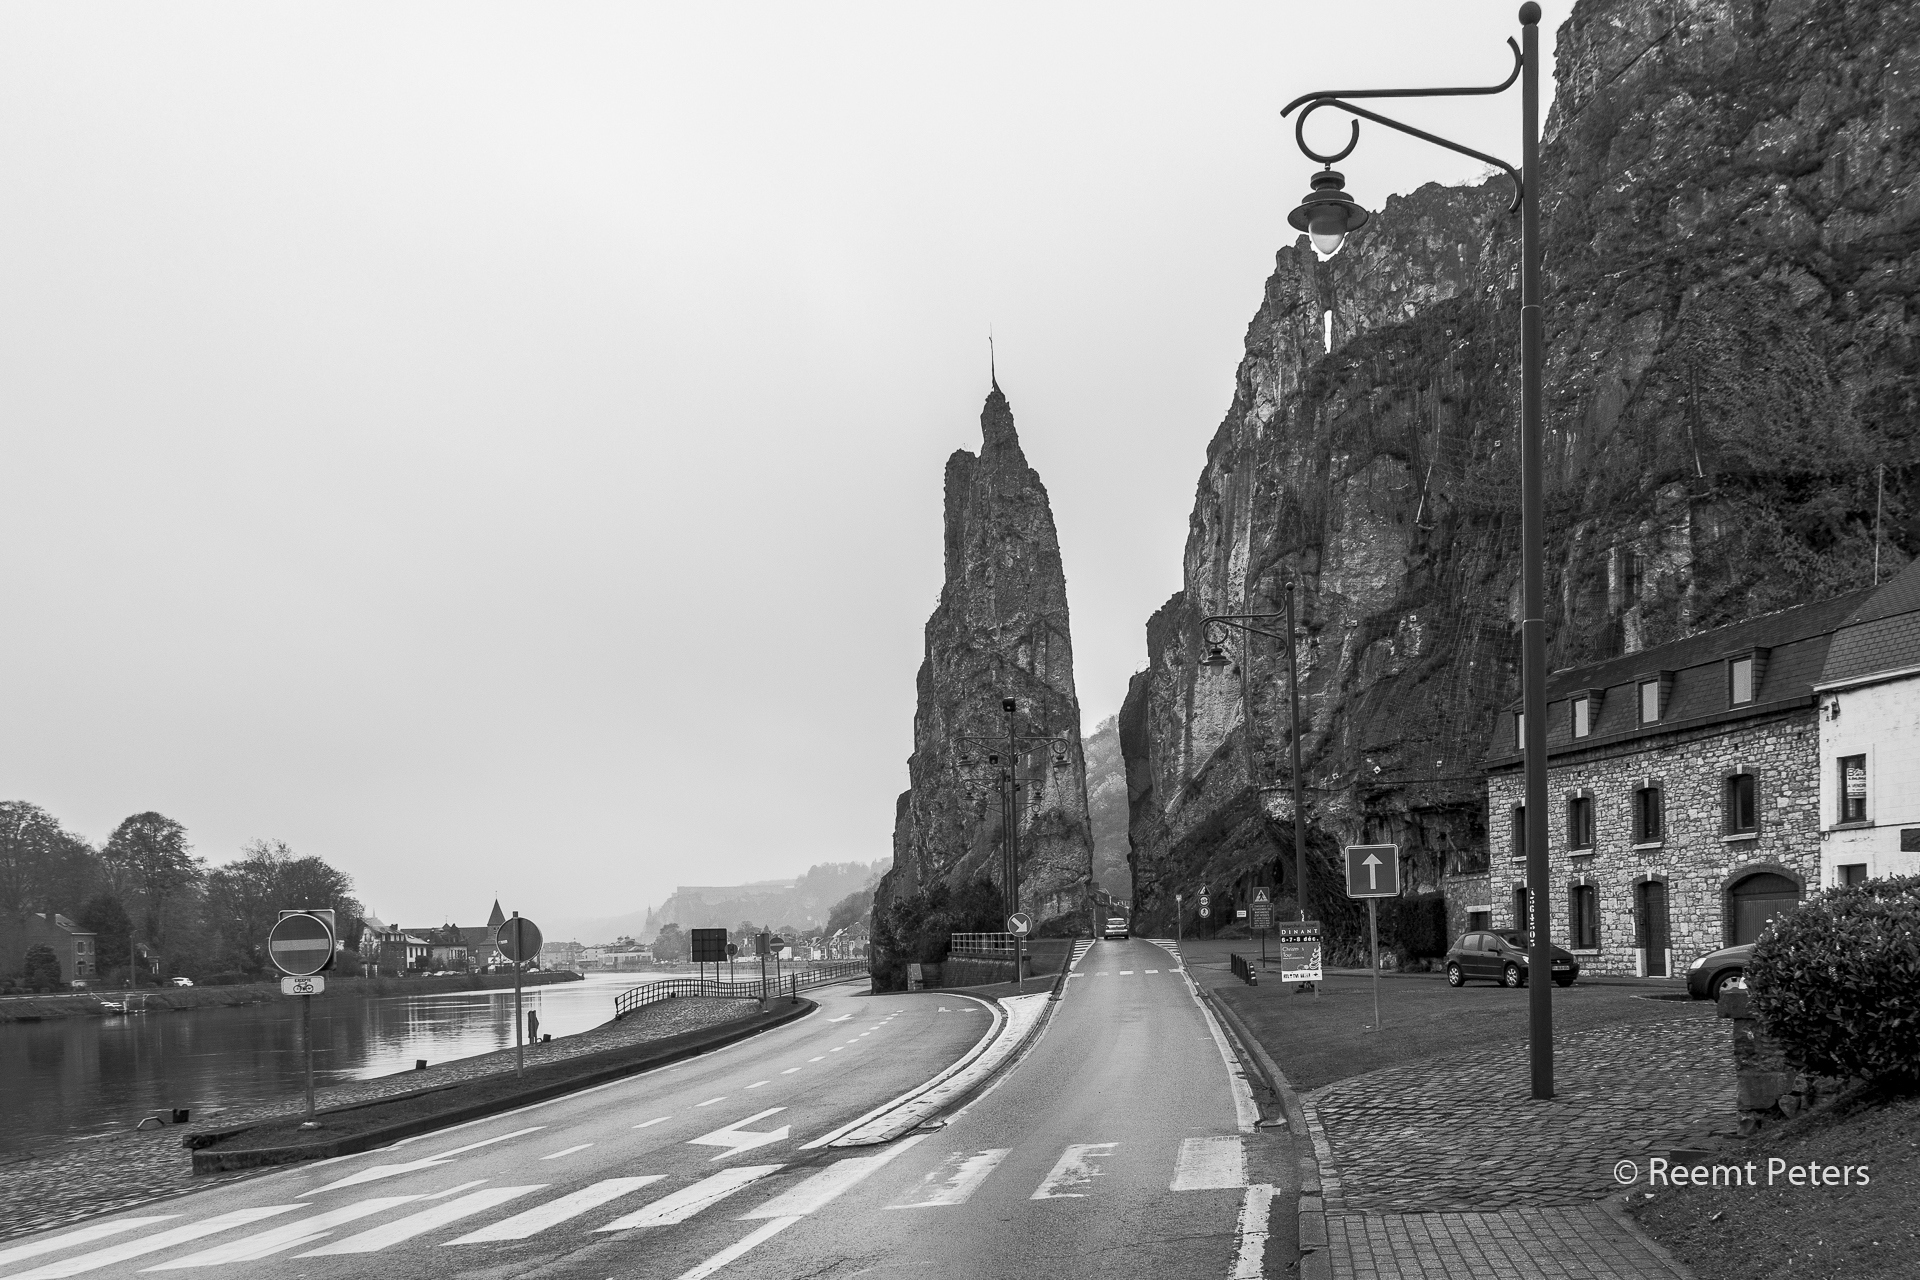 Cliff of Dinant, Belgium